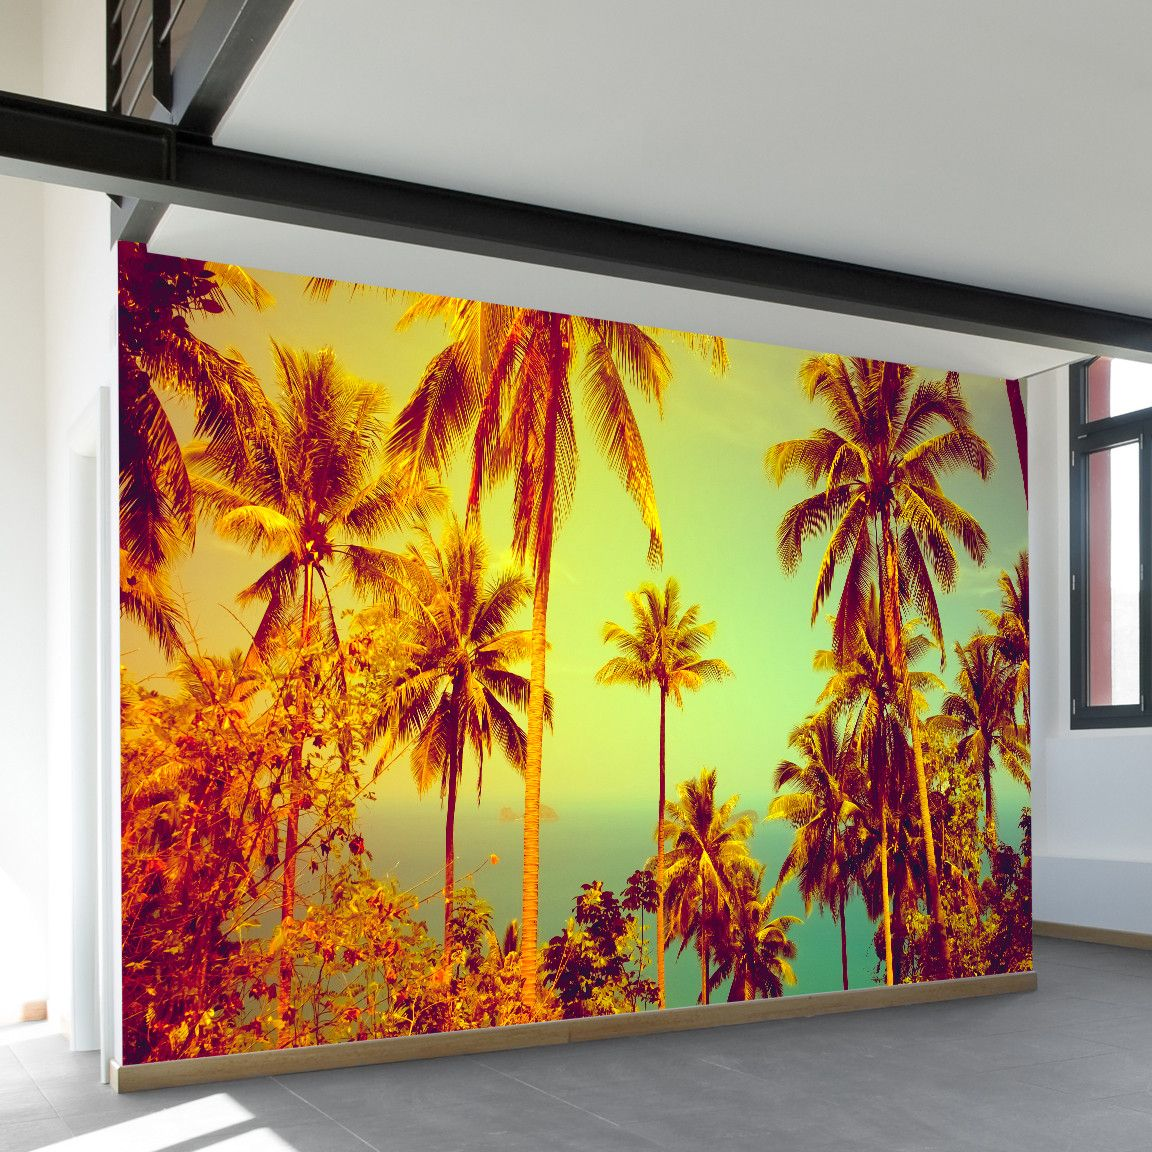 Vitamin D Wall Mural | Wall murals, Walls and Basements